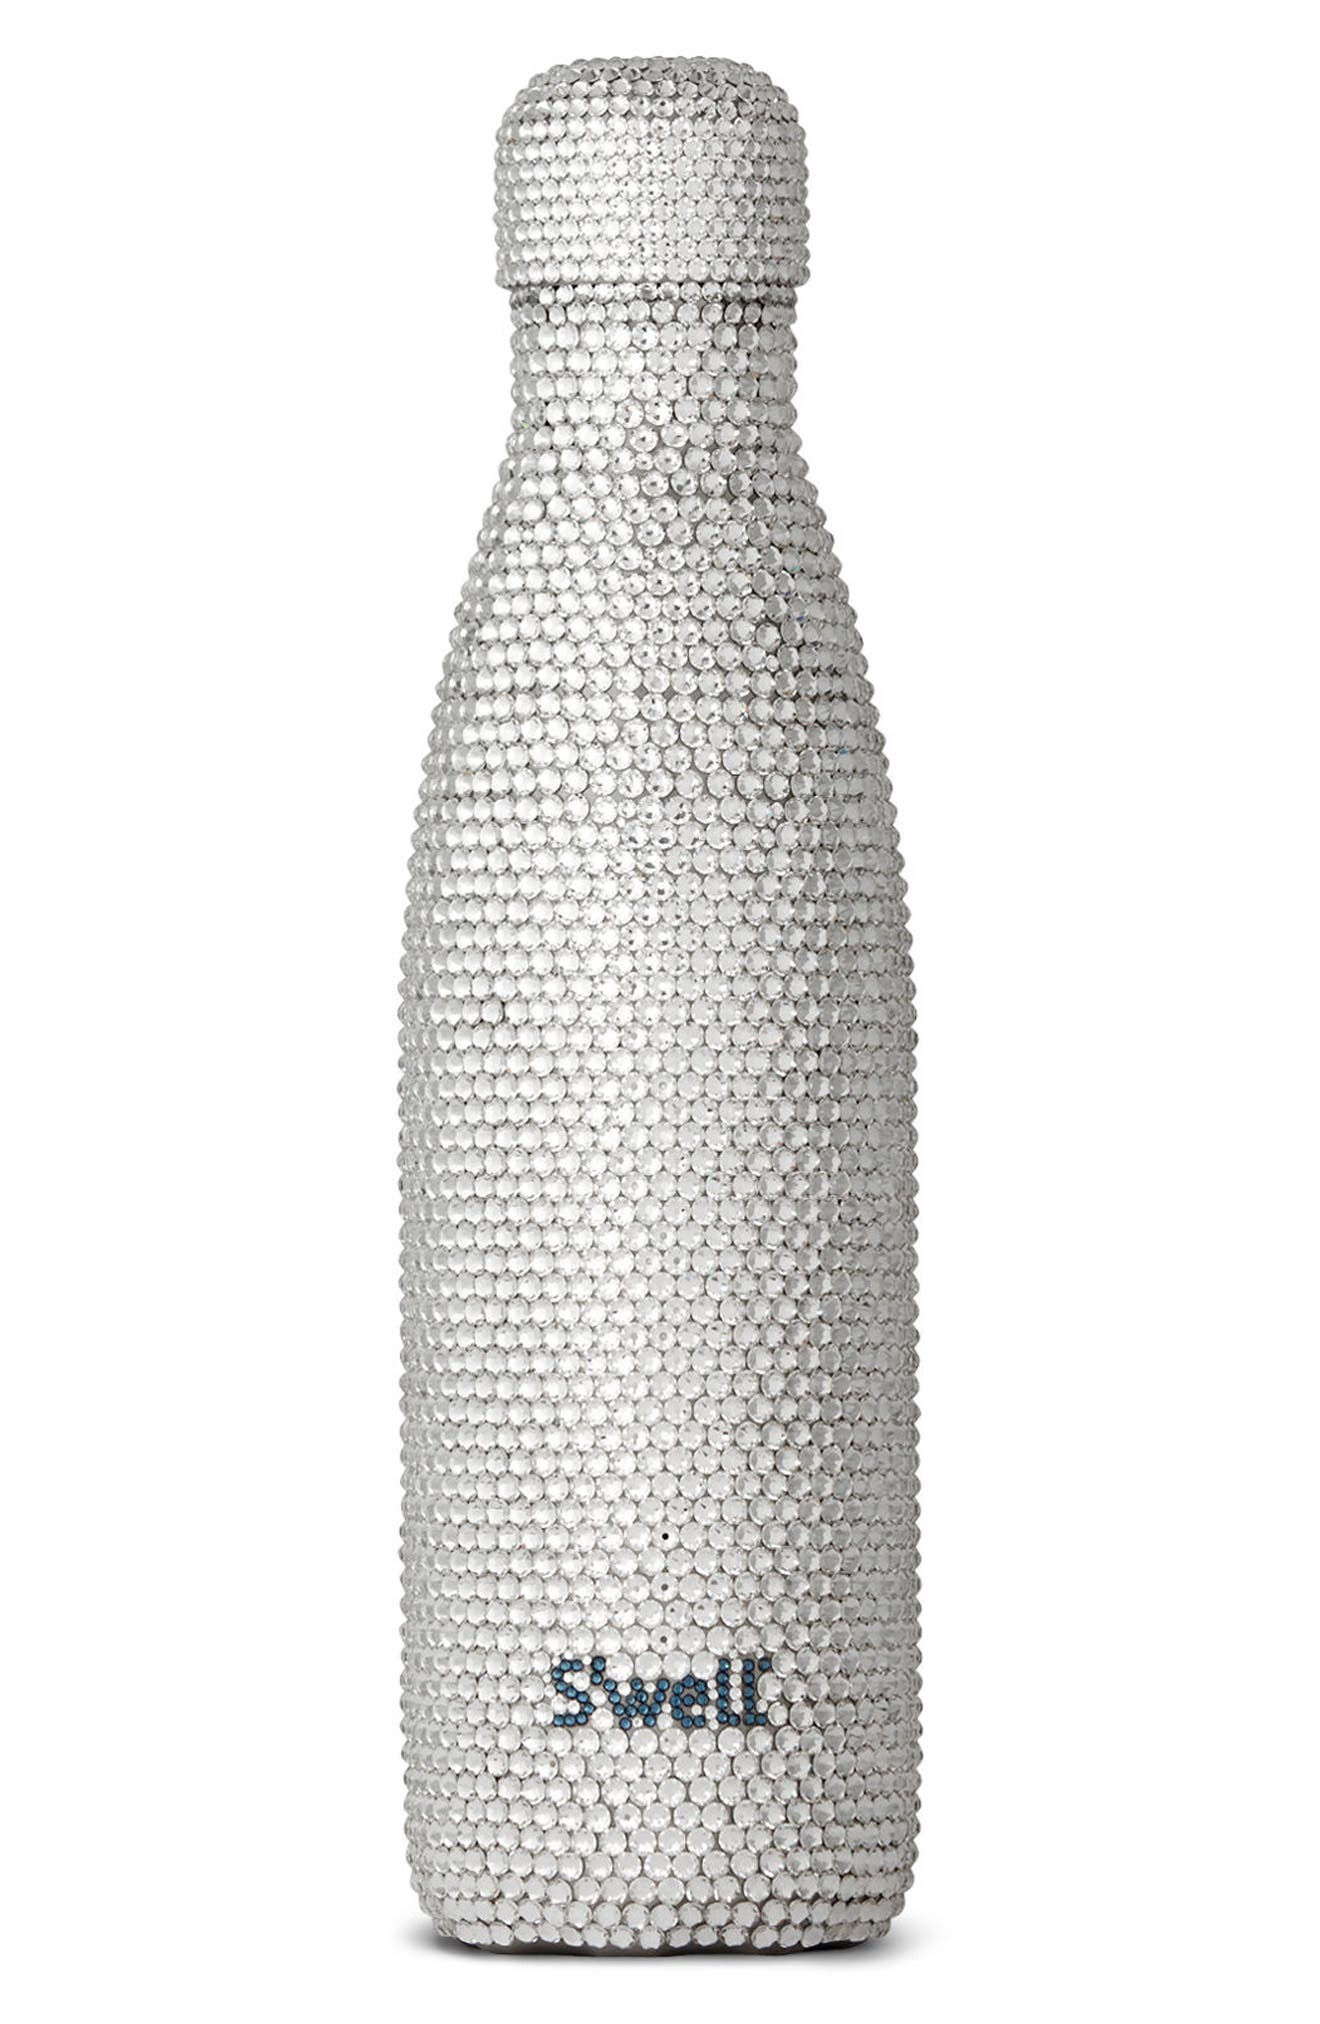 Alina Swarovski Crystal Insulated Stainless Steel Water Bottle,                             Main thumbnail 1, color,                             Alina